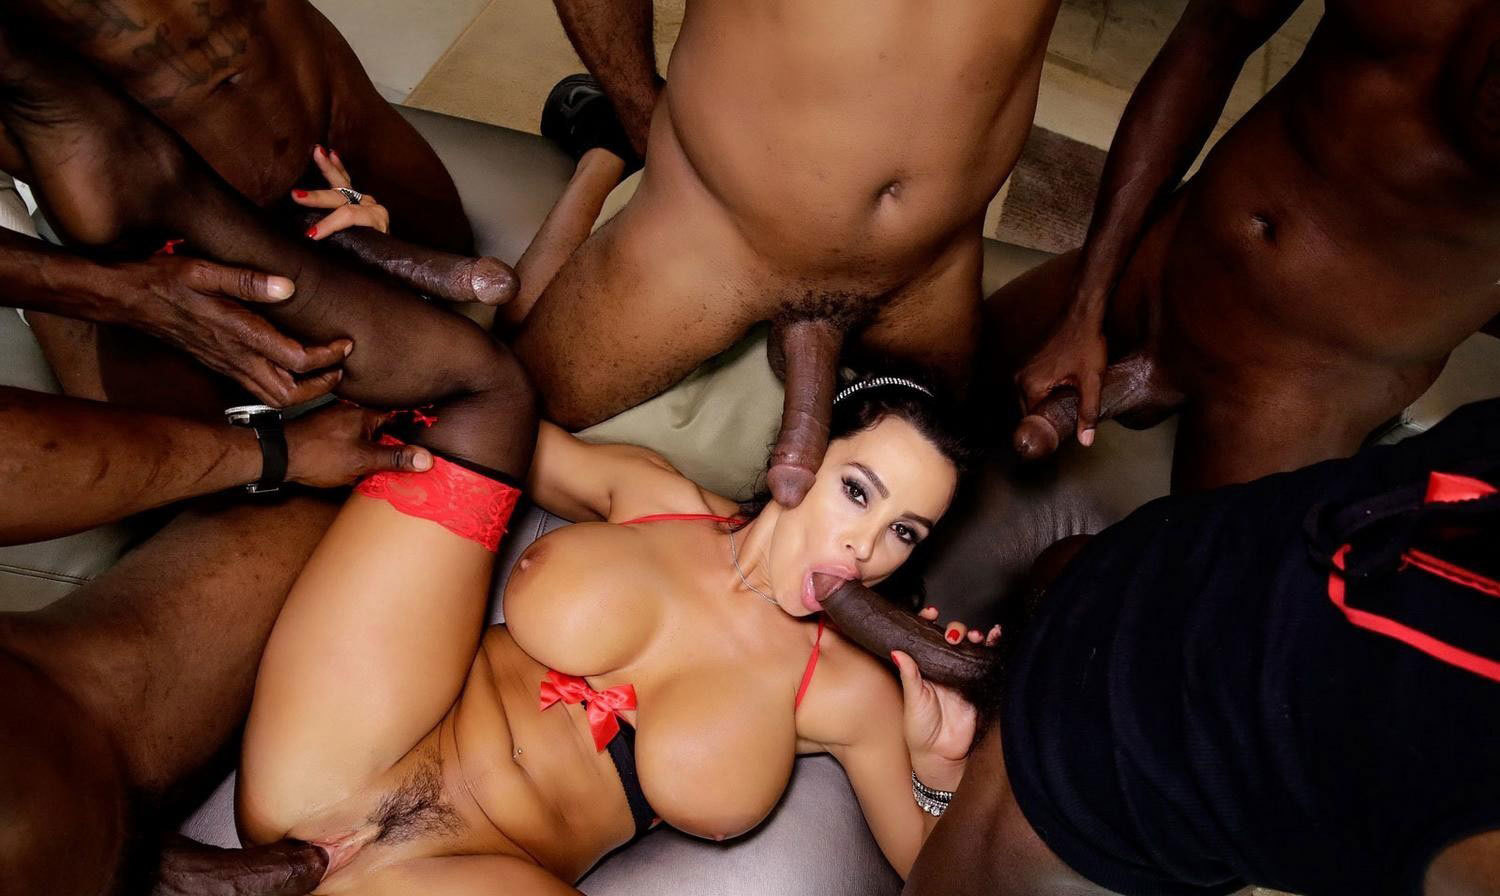 Black gang bang pono free videos #14